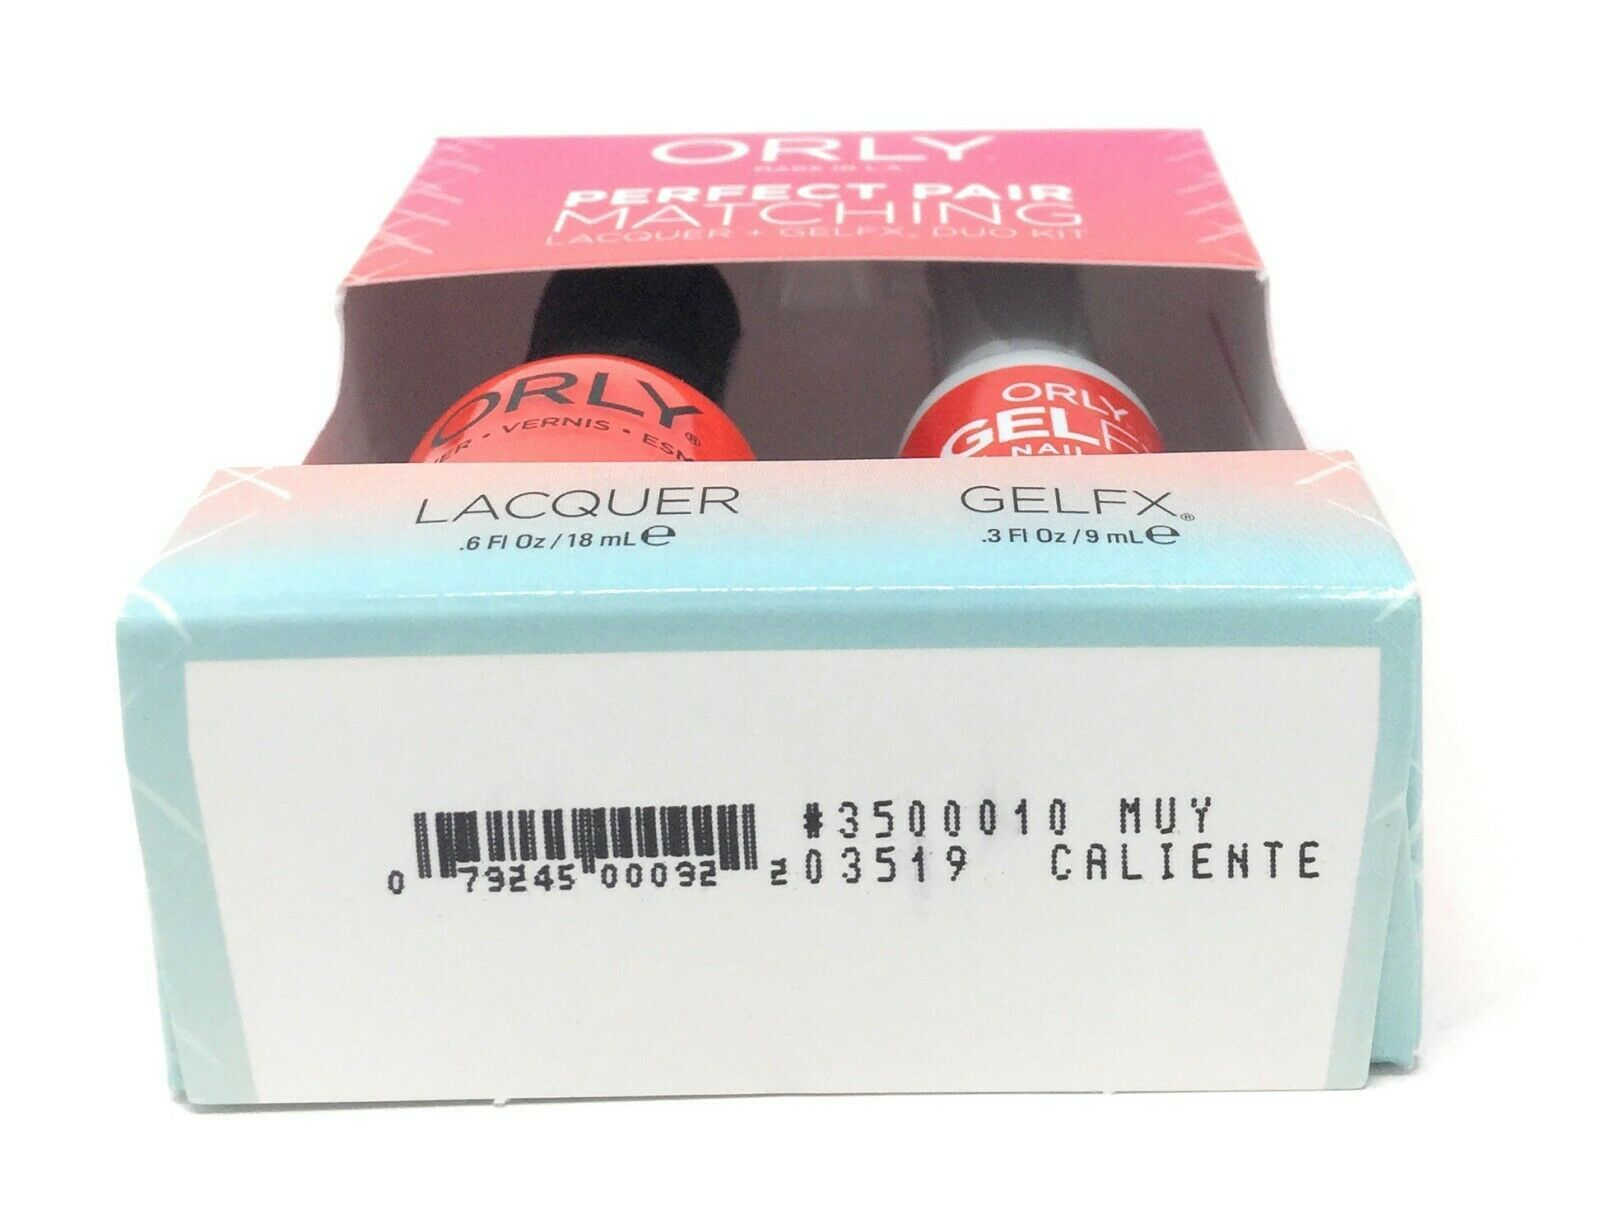 3500010 - Orly Gel FX .3oz + Nail Lacquer .6oz Combo - Muy Caliente image 2